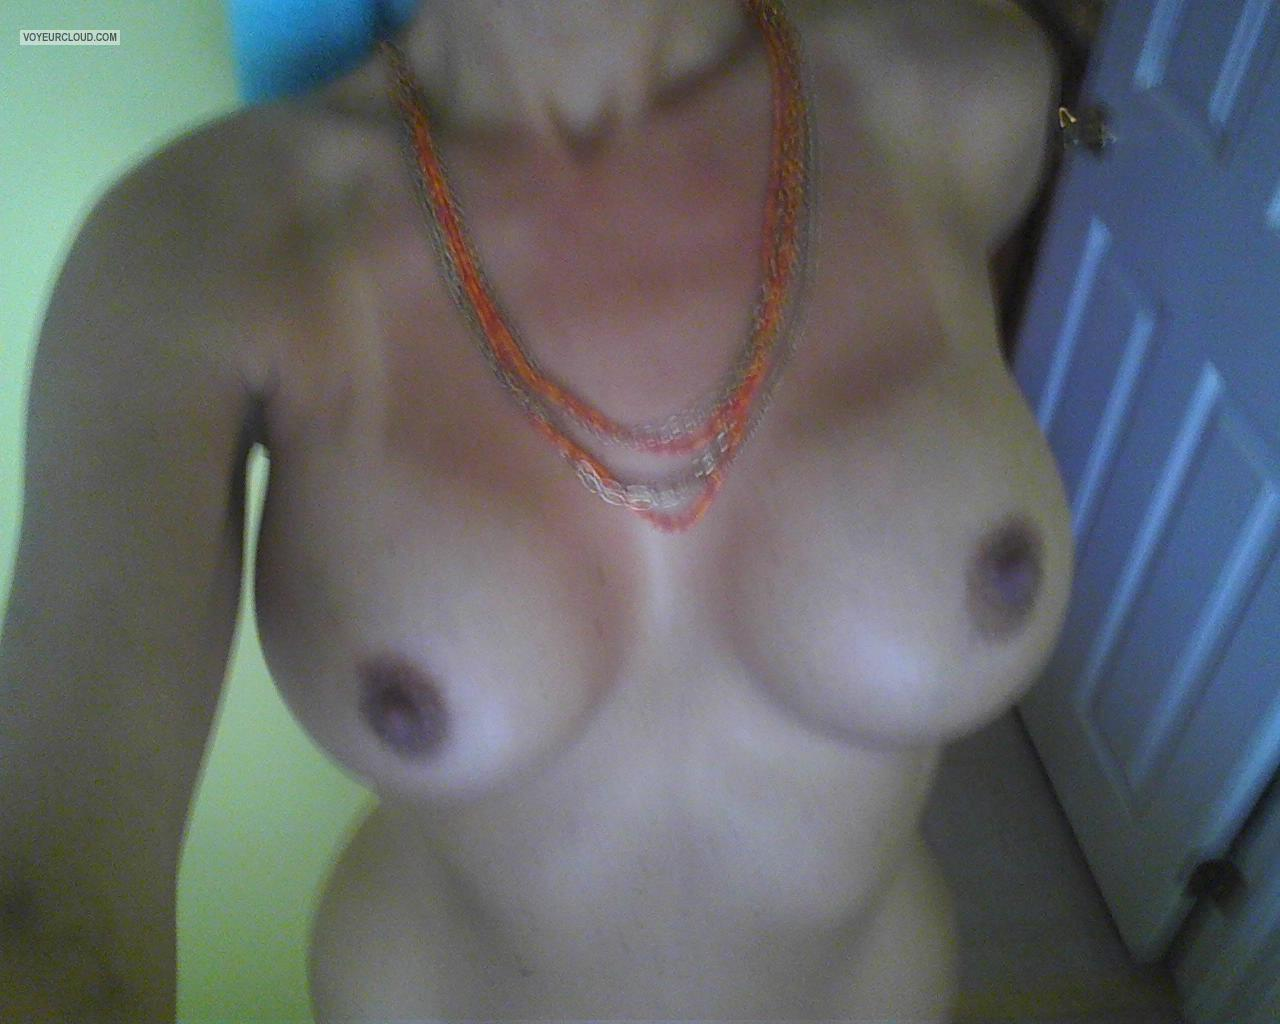 Tit Flash: My Medium Tits (Selfie) - Kellie0girl from United States